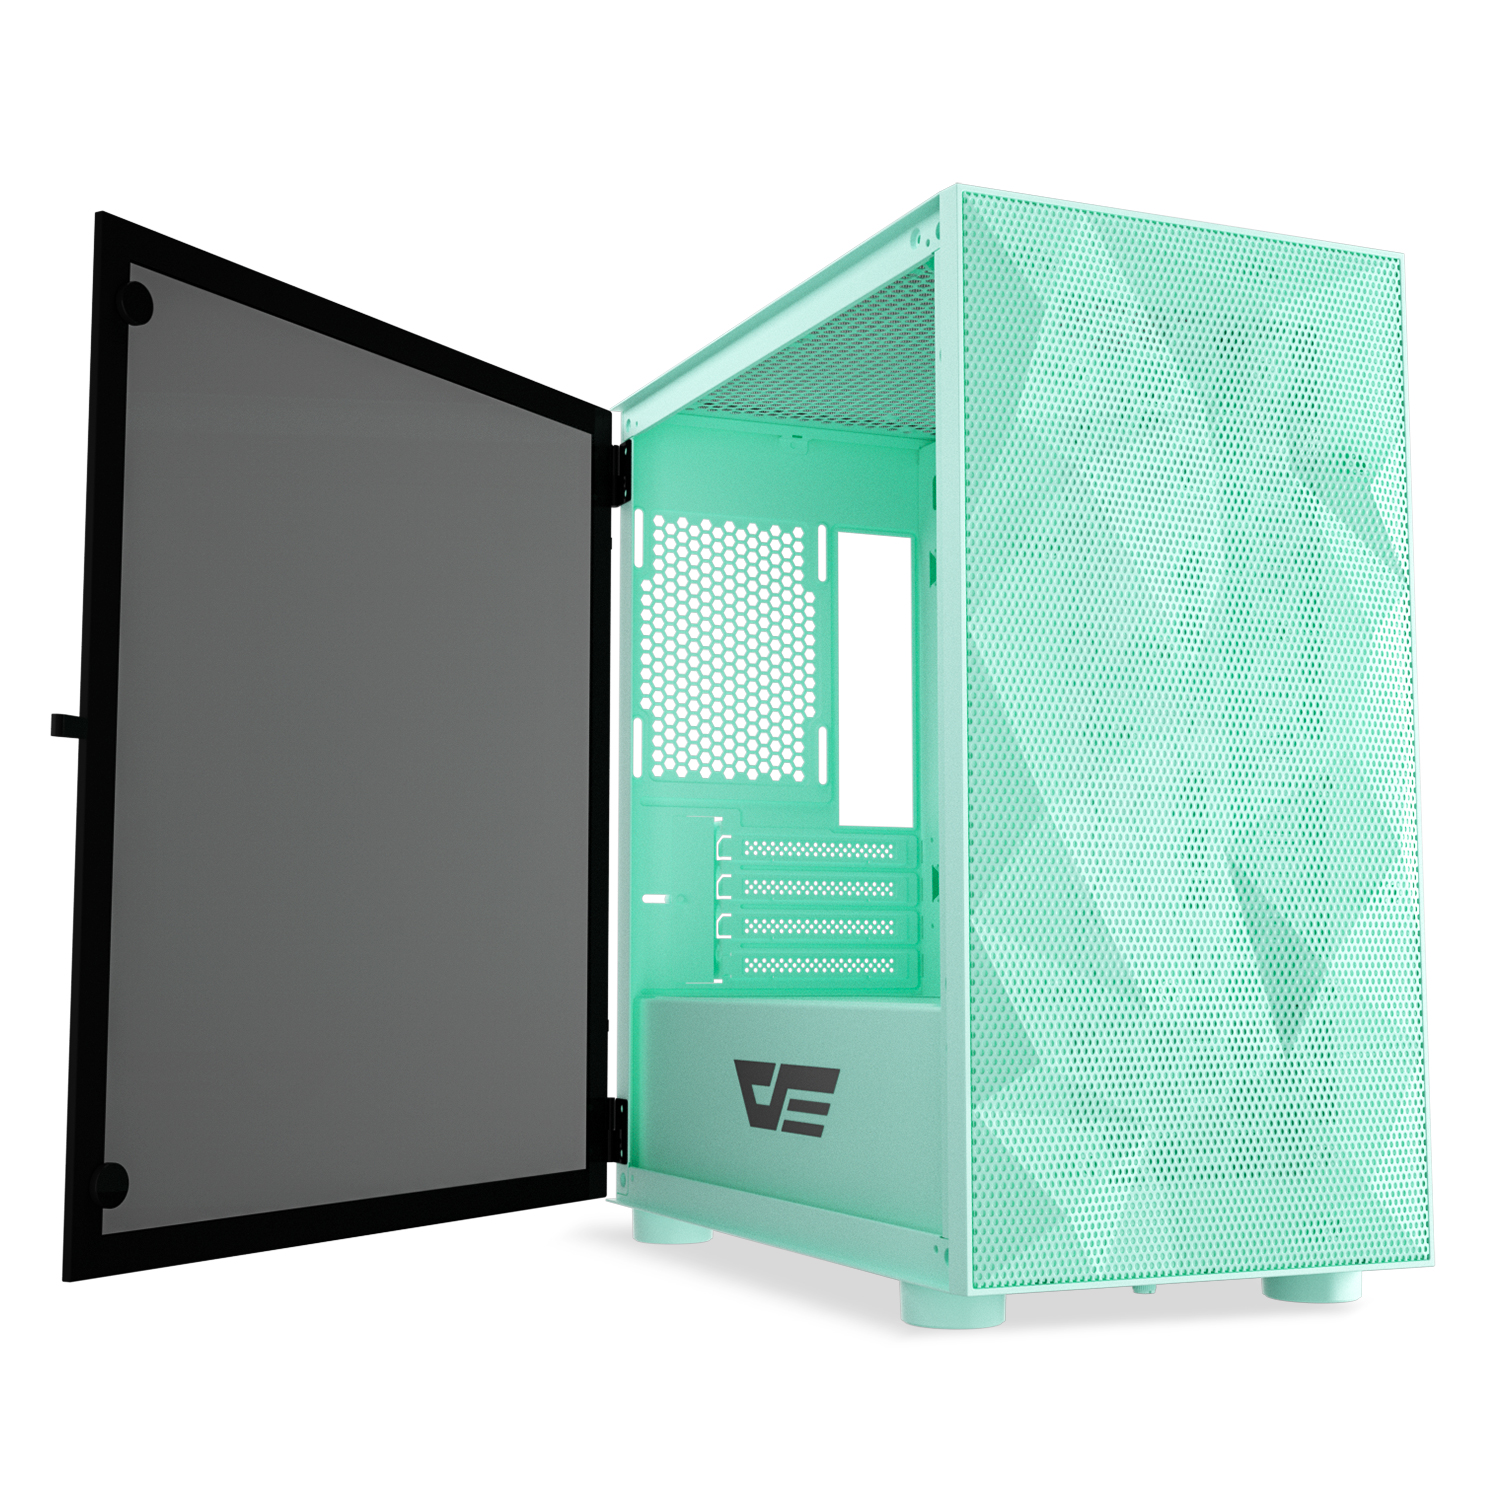 darkFlash DLM21 MESH Micro ATX Mini ITX Tower MicroATX Computer Case with Door Opening Tempered Glass Side Panel /& Mesh Front Panel Mint Green